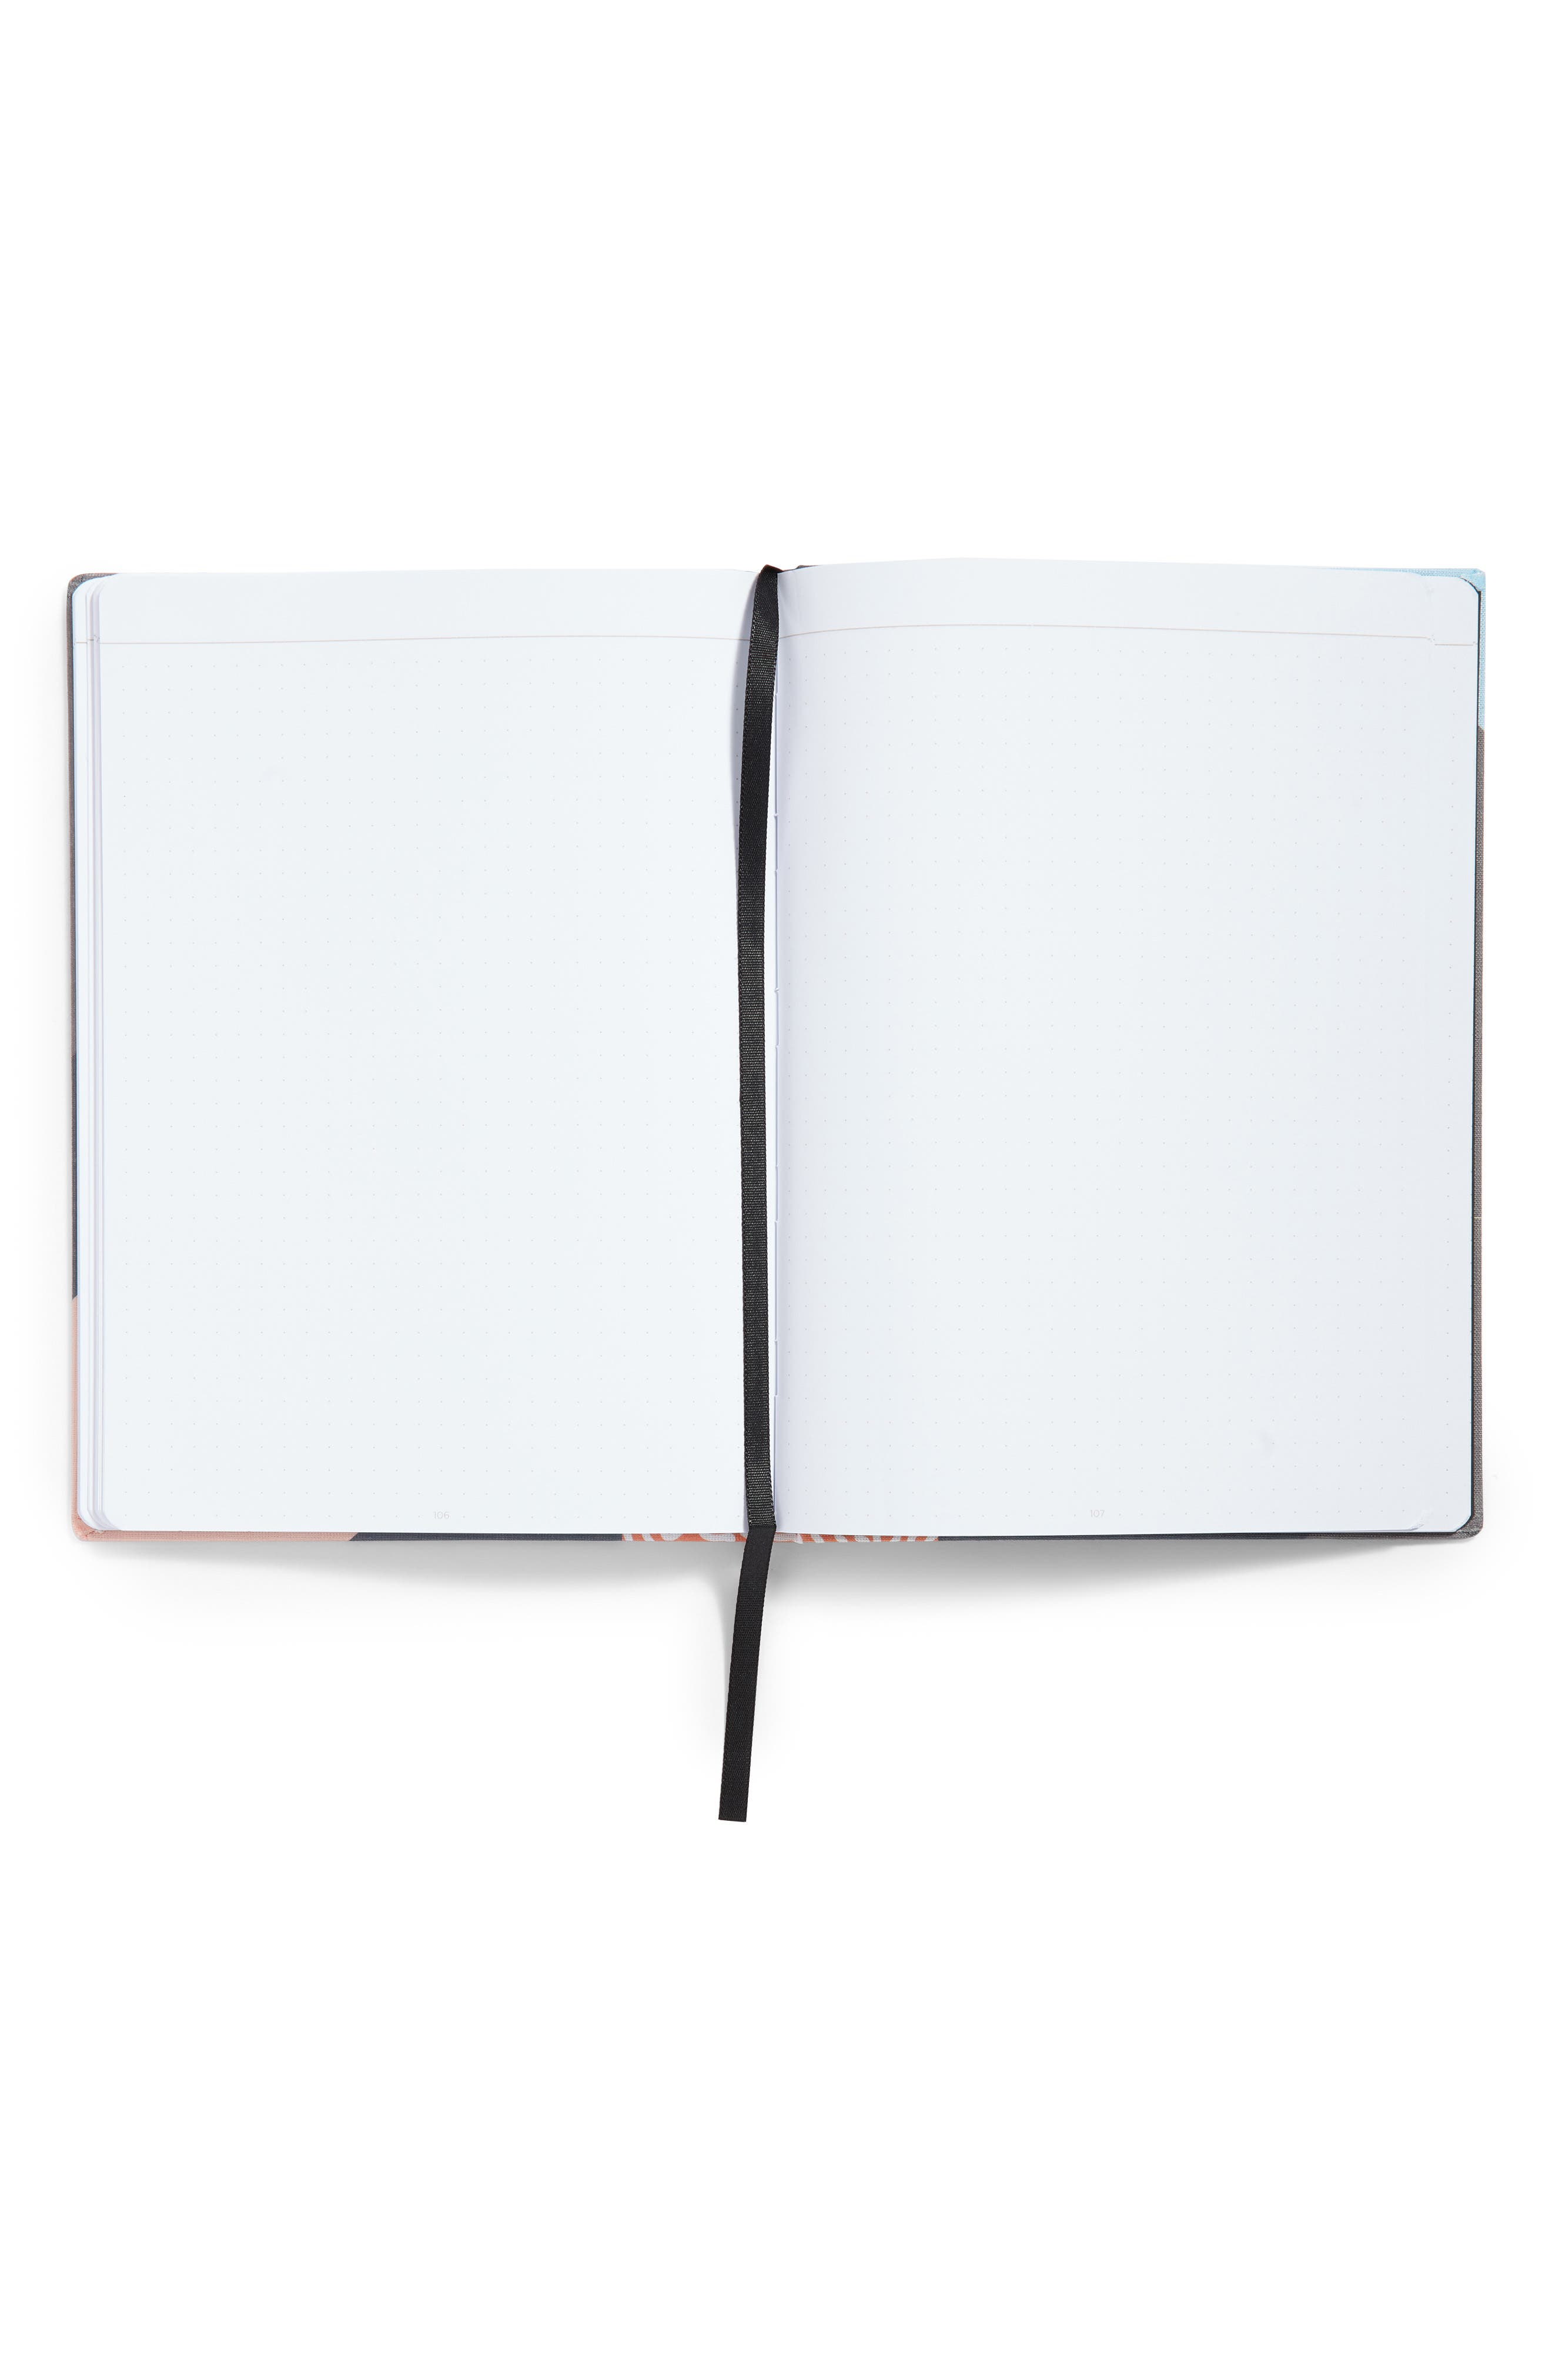 Giratoire Roundabout Notebook,                             Alternate thumbnail 2, color,                             Multi